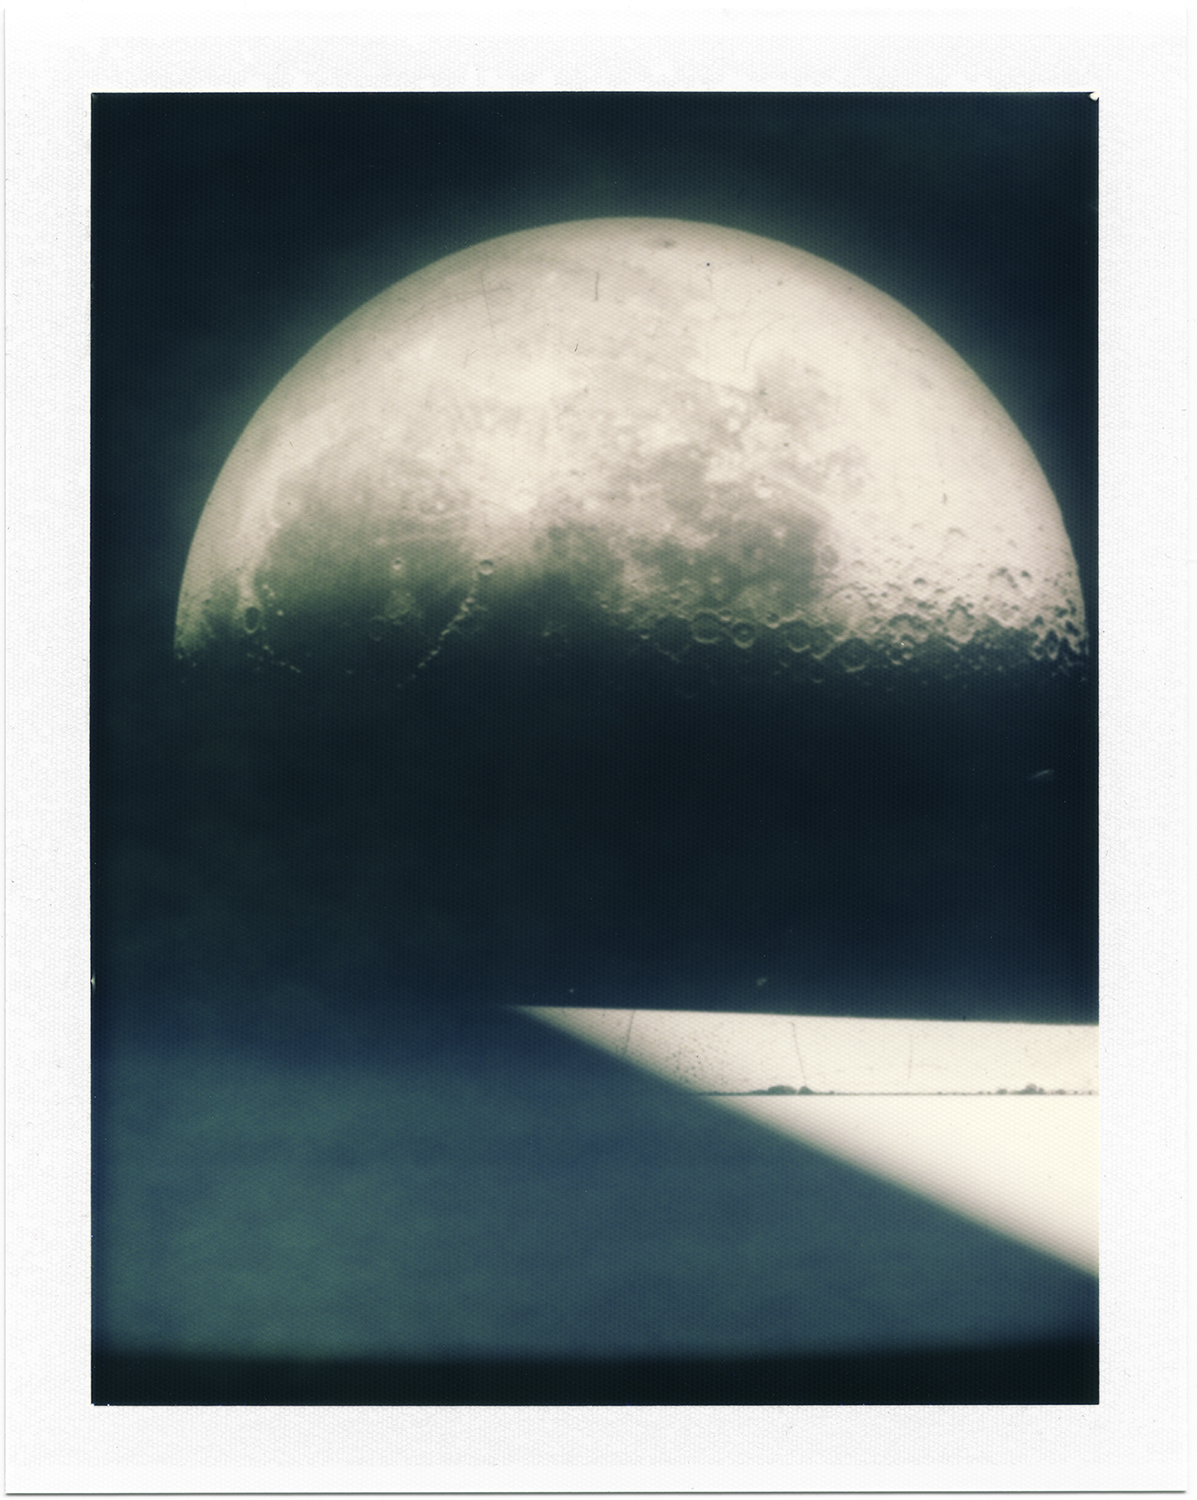 04_Polaroid Lunagram (MoonRise).jpg